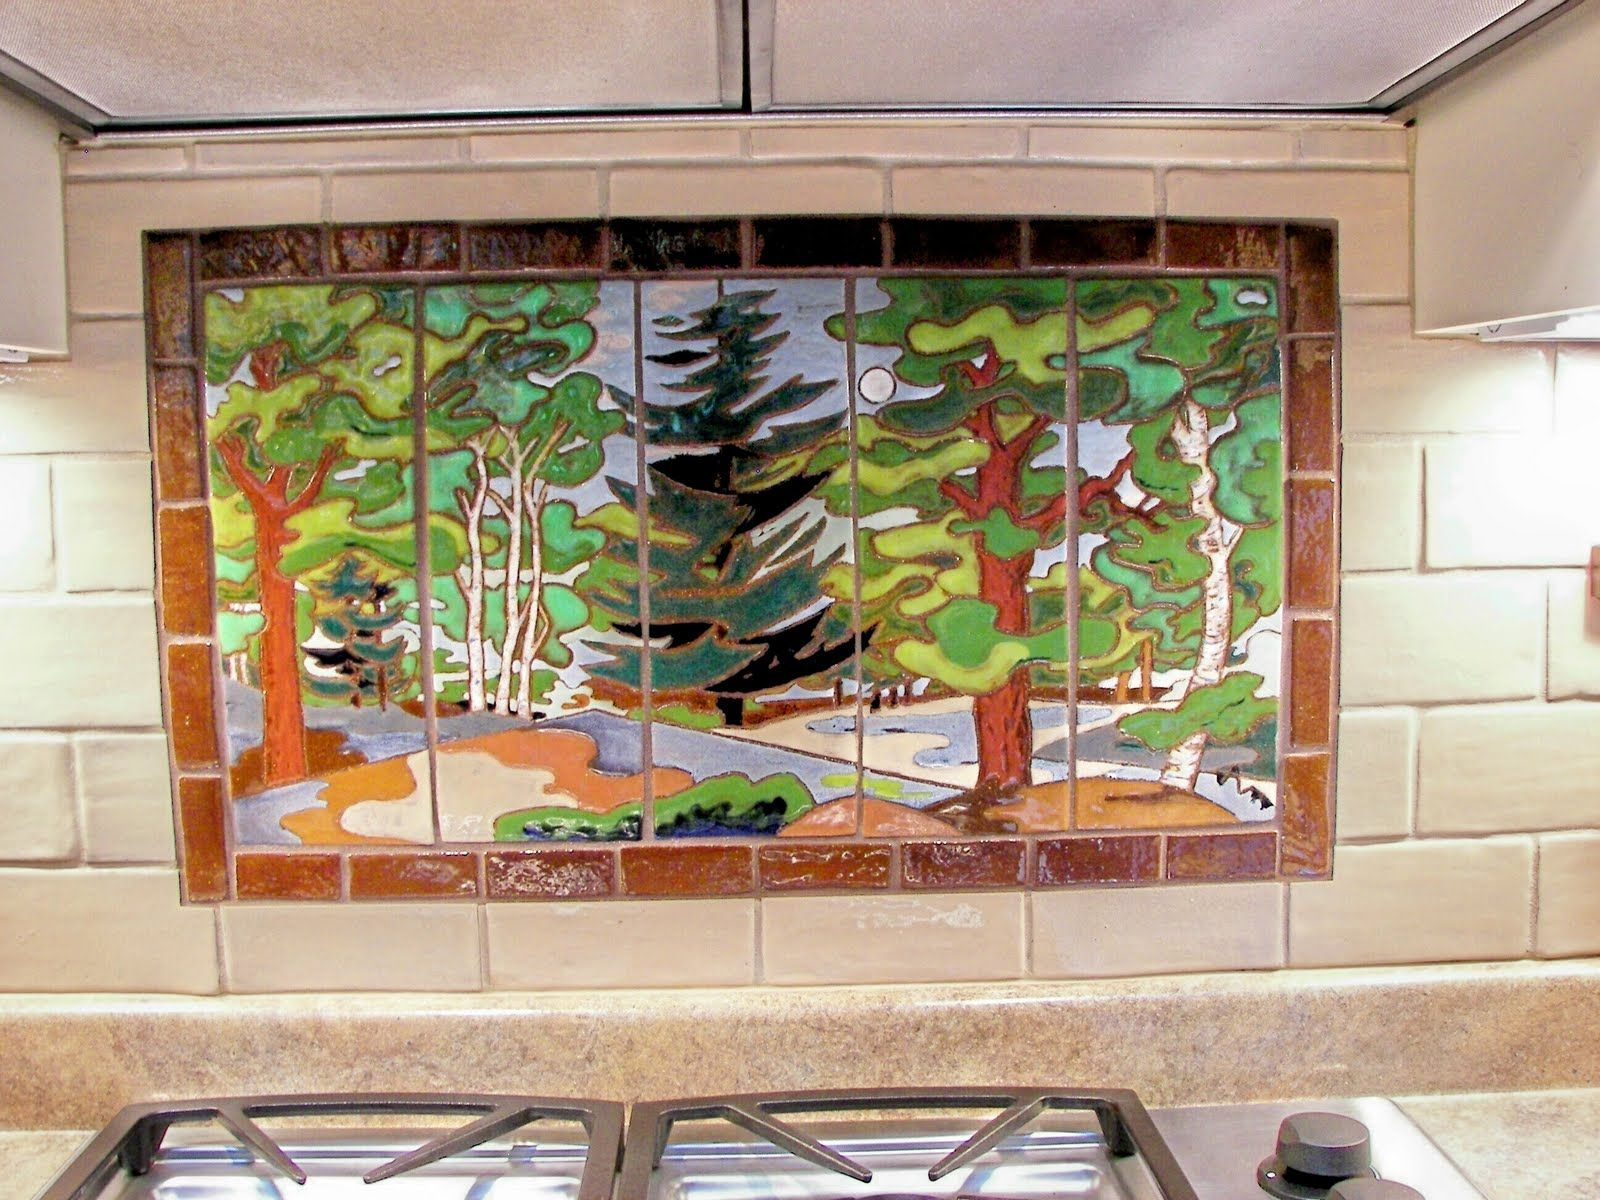 Groovy Arts And Crafts Tile Backsplash Backsplash Installed Into Download Free Architecture Designs Grimeyleaguecom